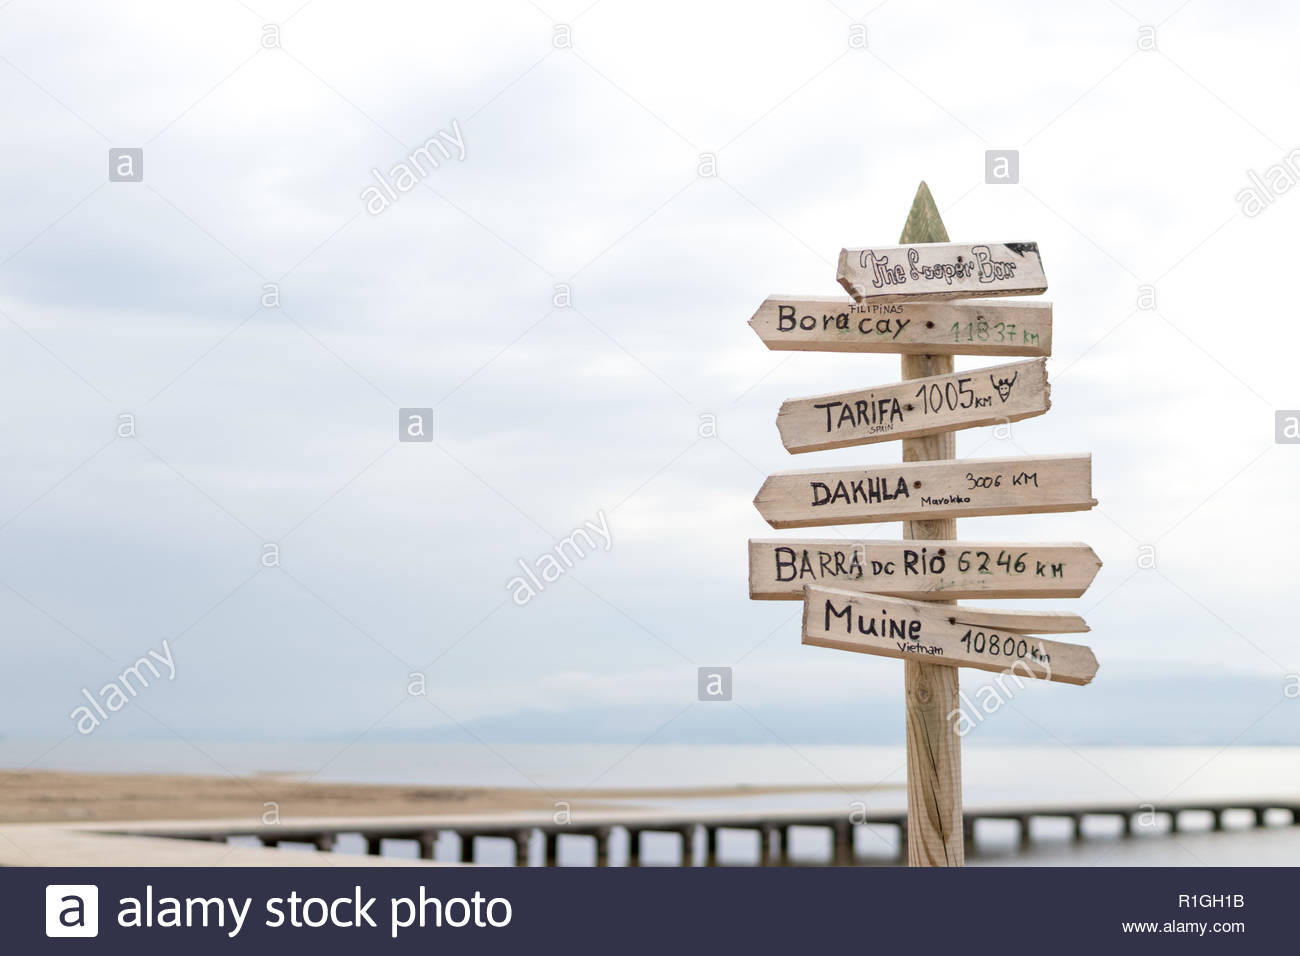 DELTEBRE, SPAIN - MAY 2018: Signals with distances to the closest surfing beaches. - Stock Image